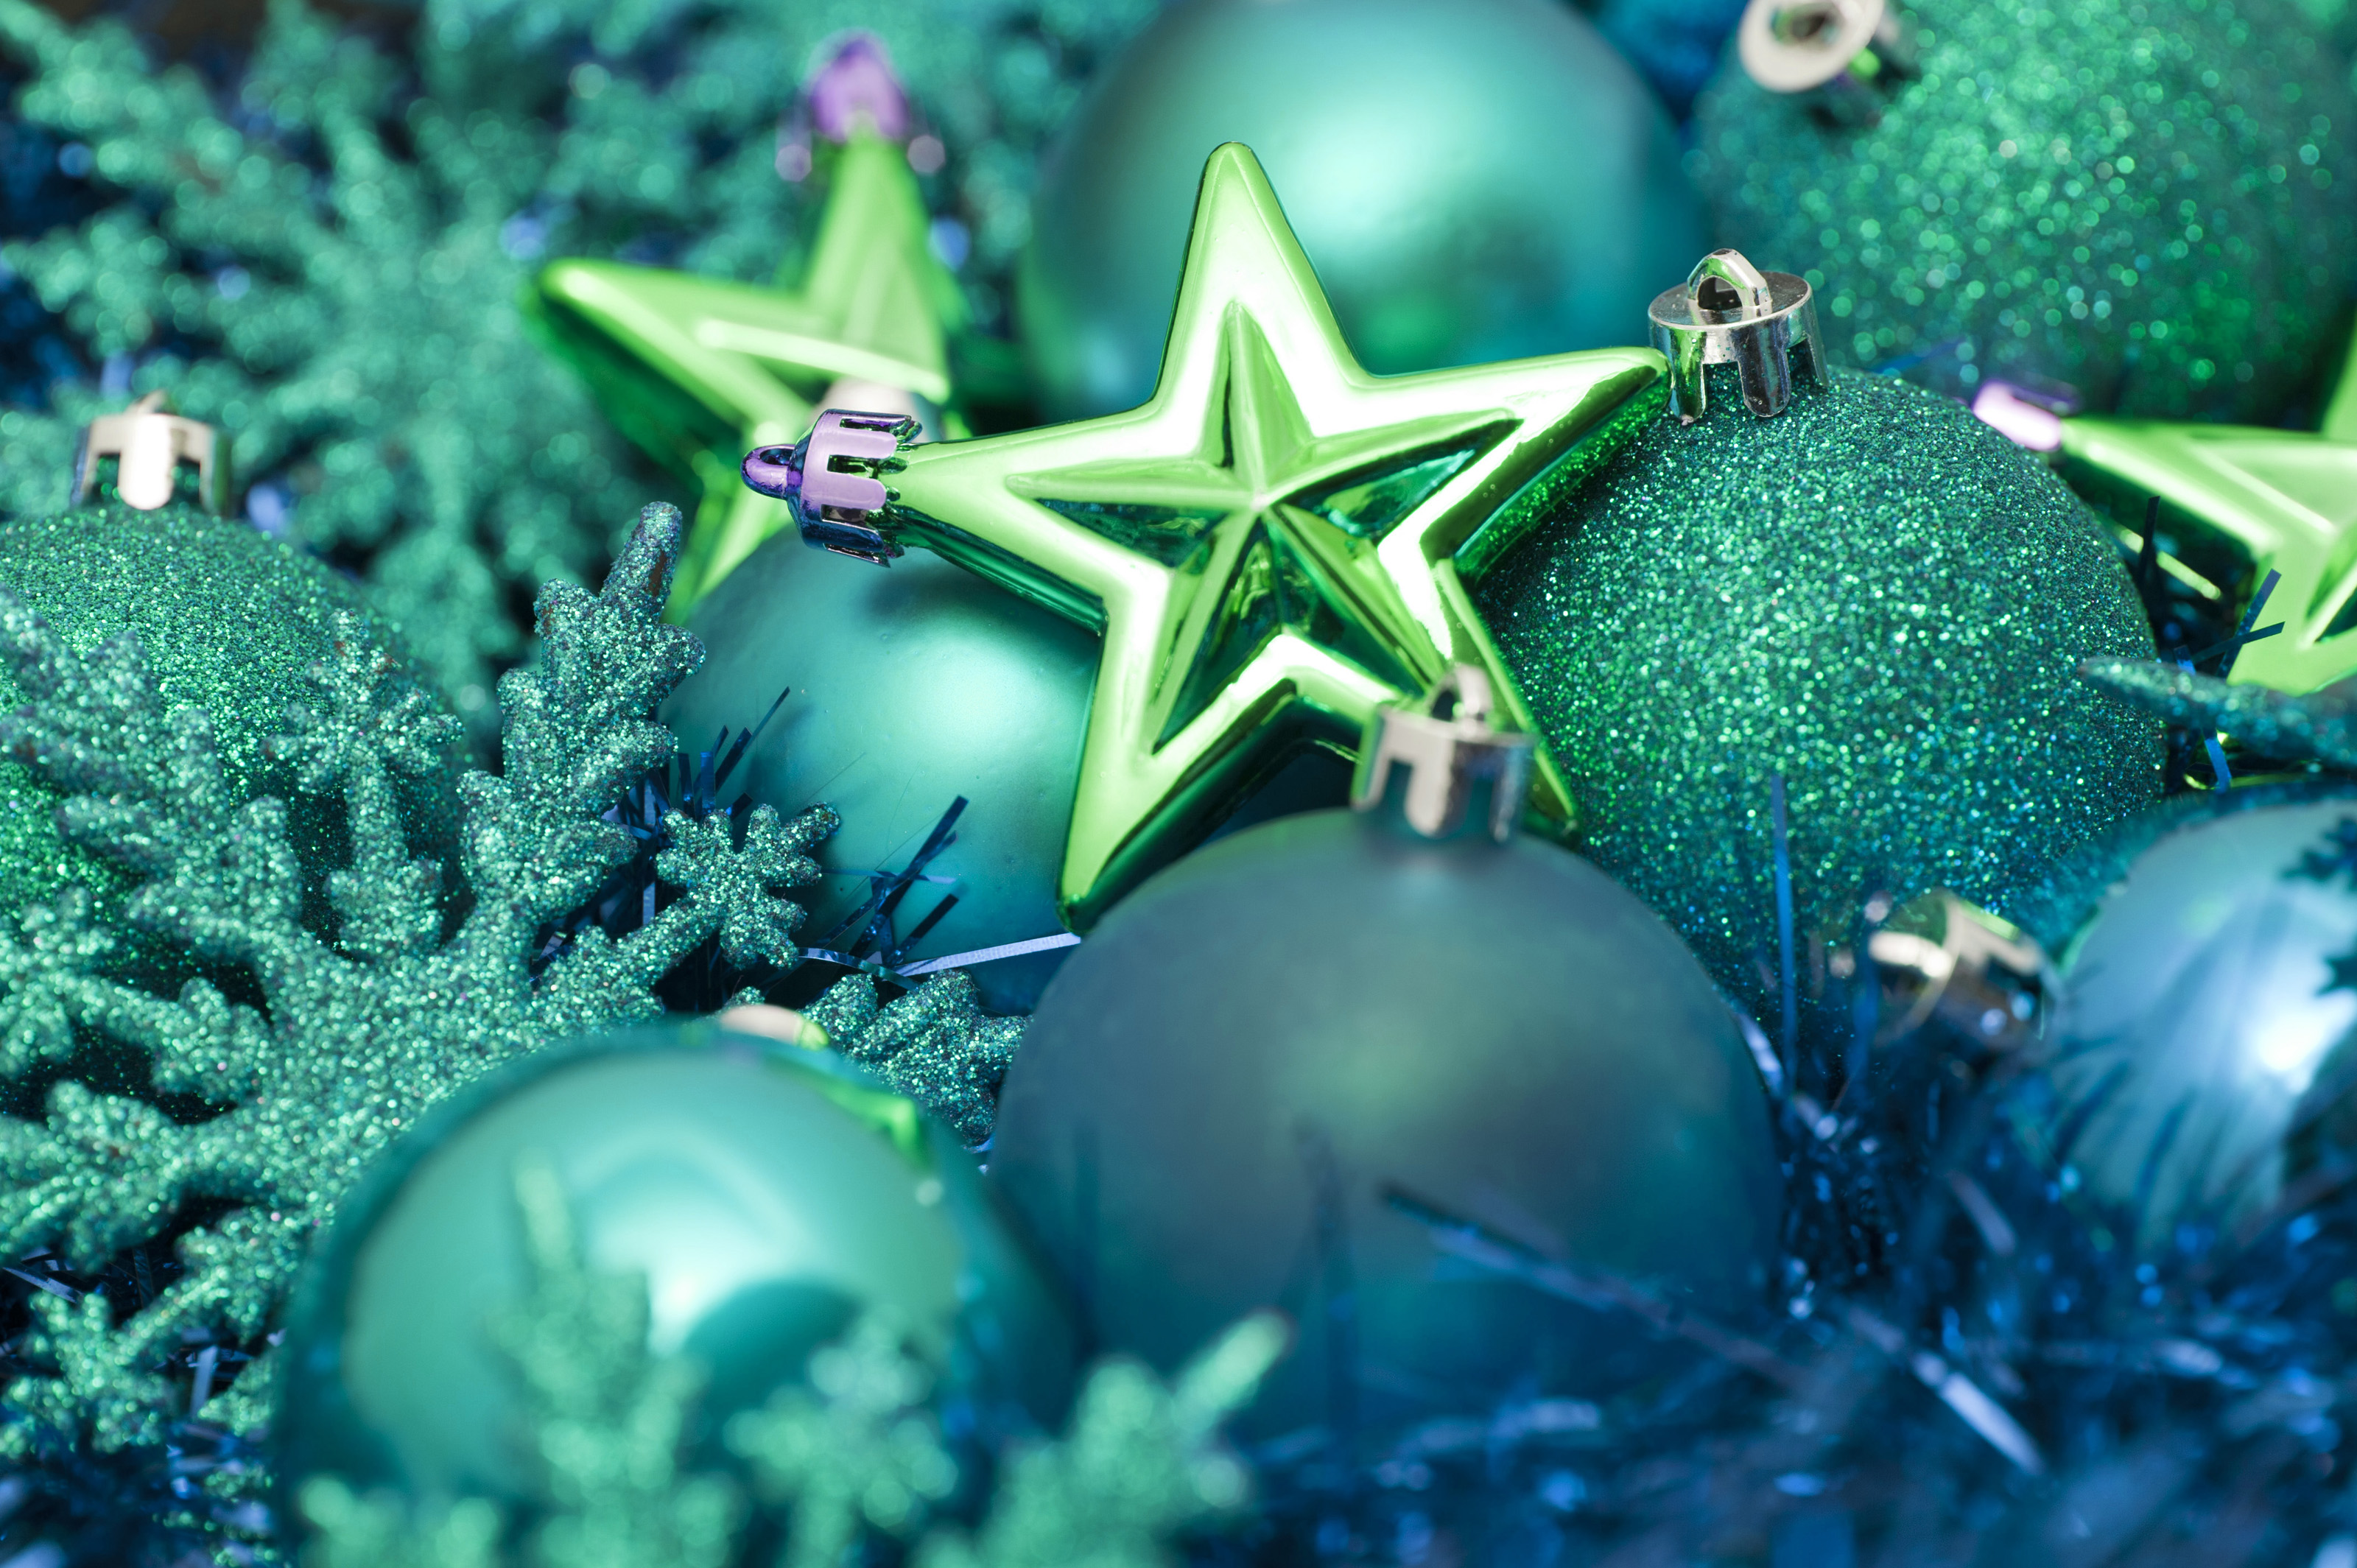 Free stock photo 6819 festive green xmas decorations for A green christmas decoration